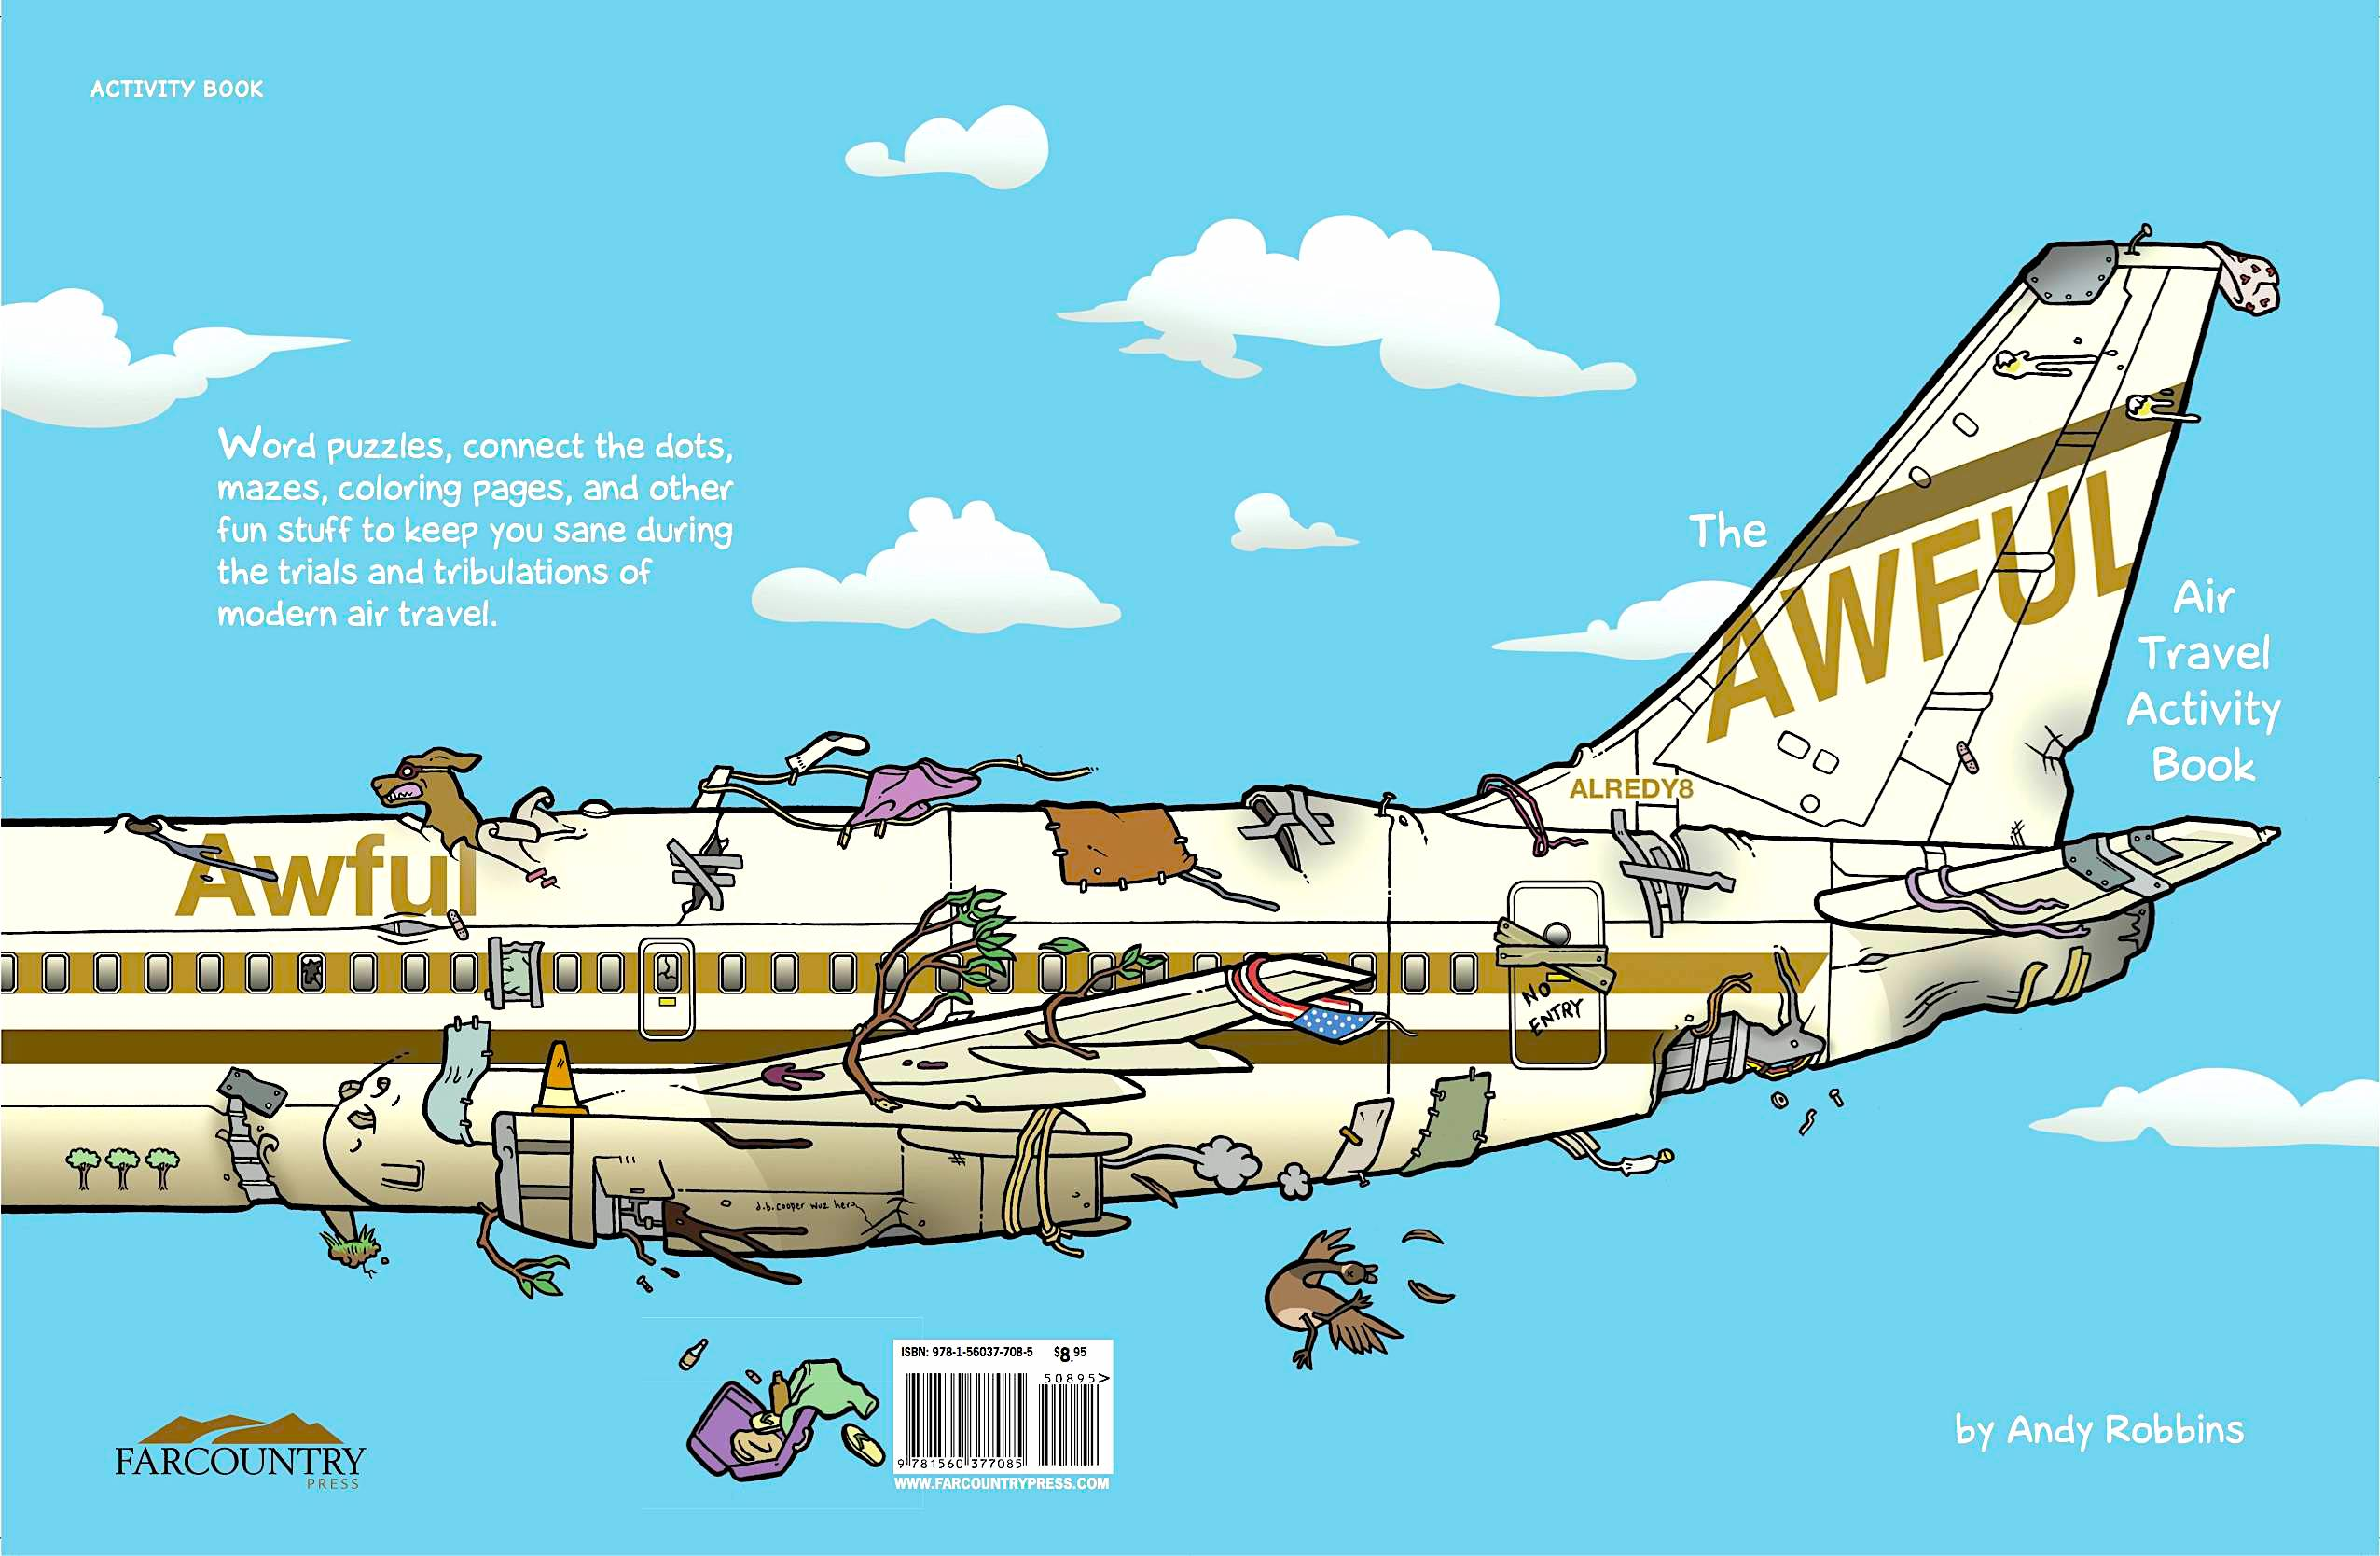 The Awful Air Travel Activity Book